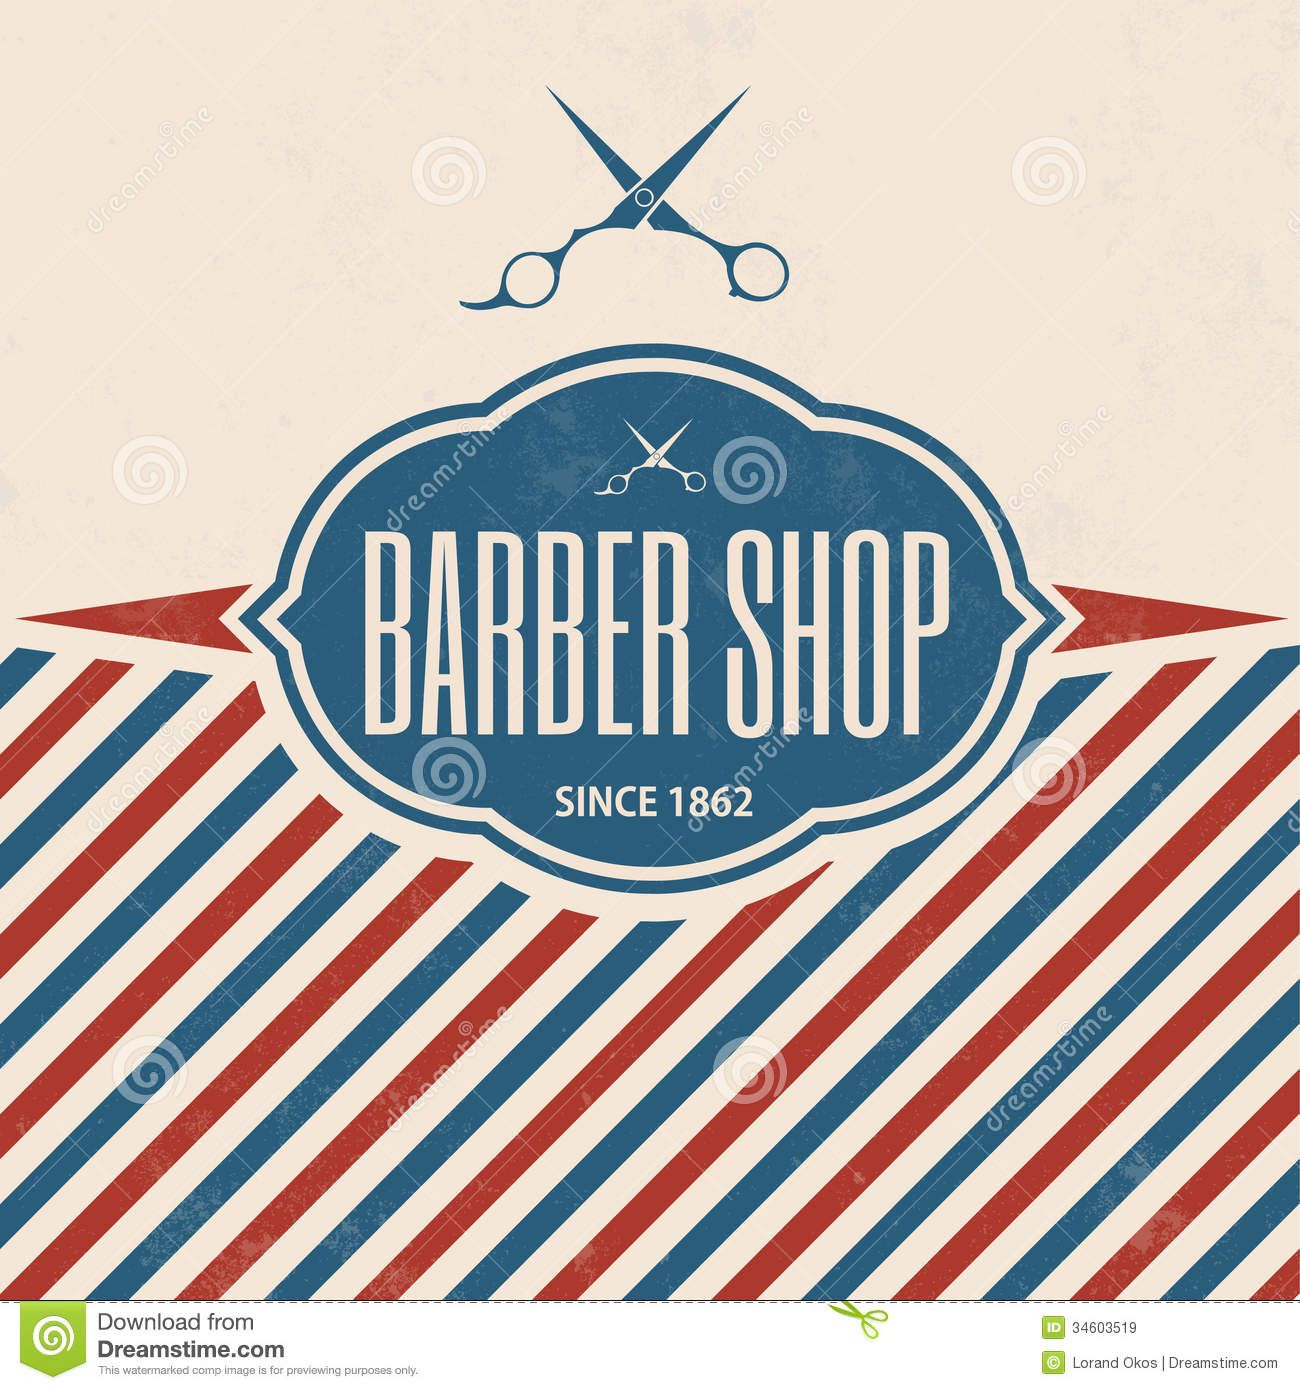 Antique barber shop sign - Retro Barber Shop Vintage Template Grunge Texture 34603519